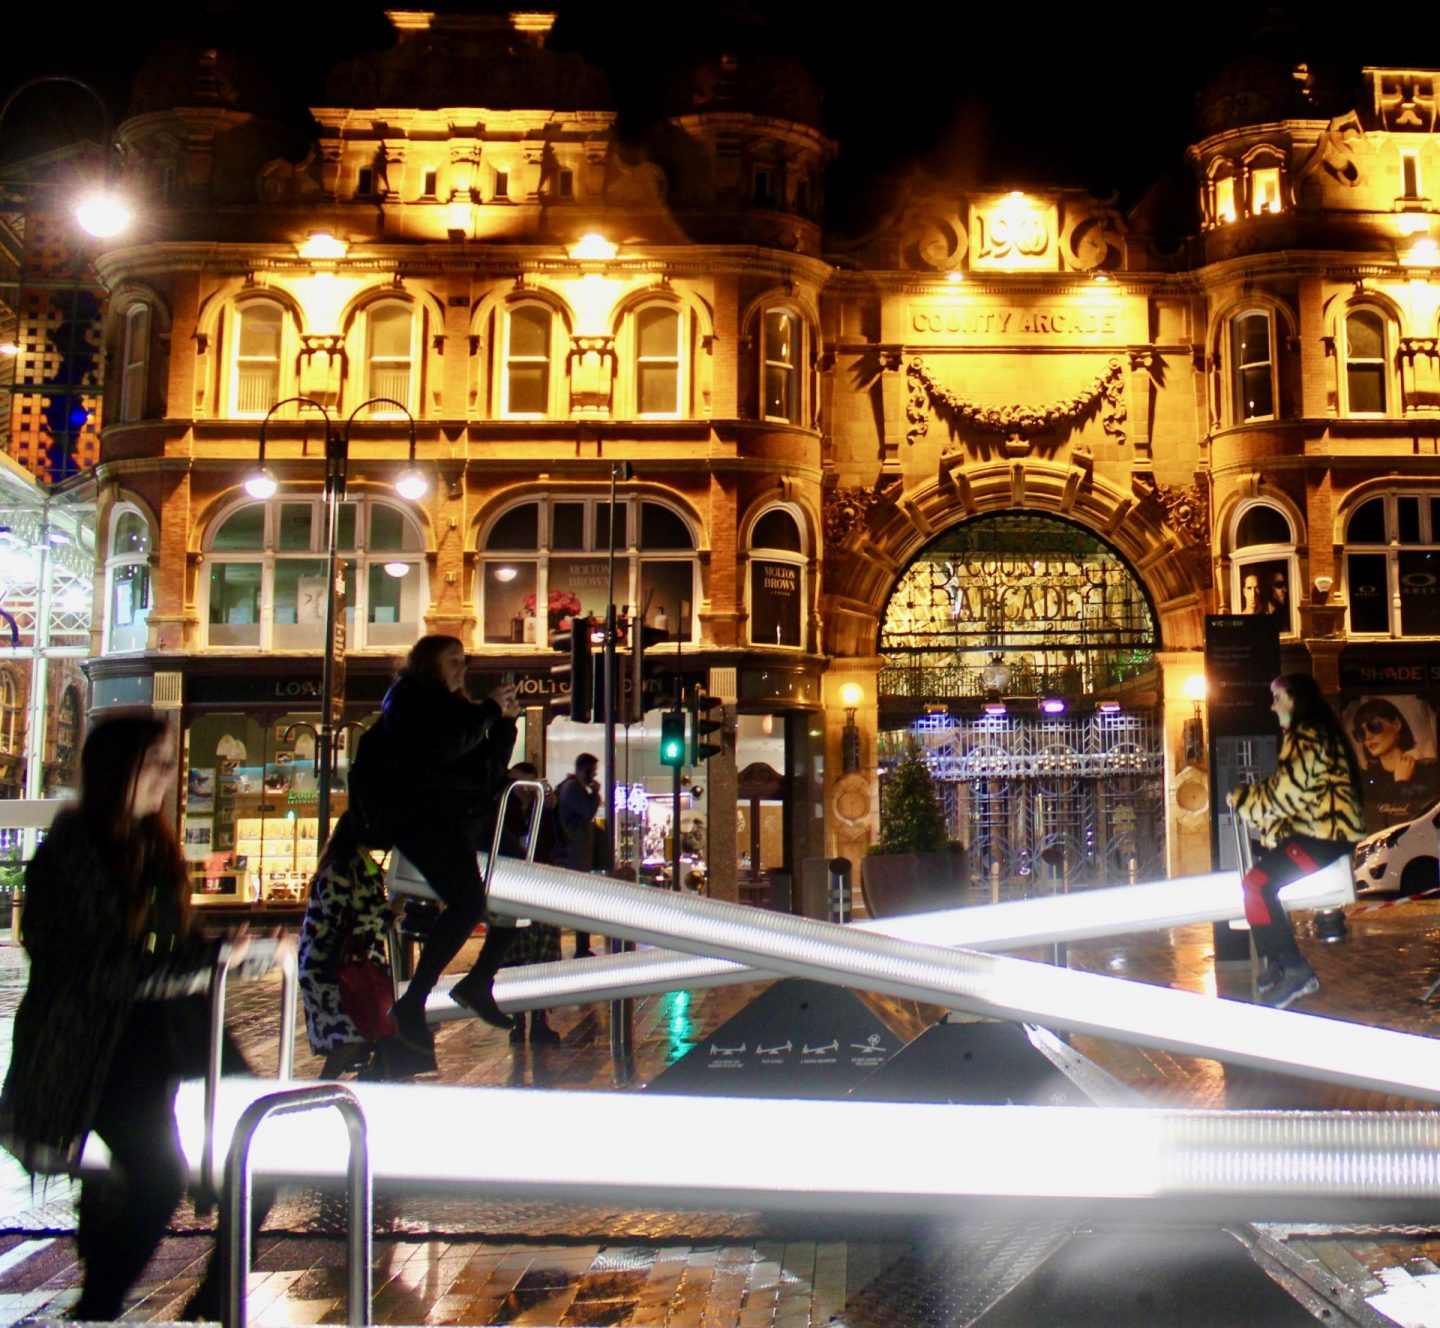 Illuminated seesaws in action, in front of the County Arcade in Leeds at Leeds Light Night